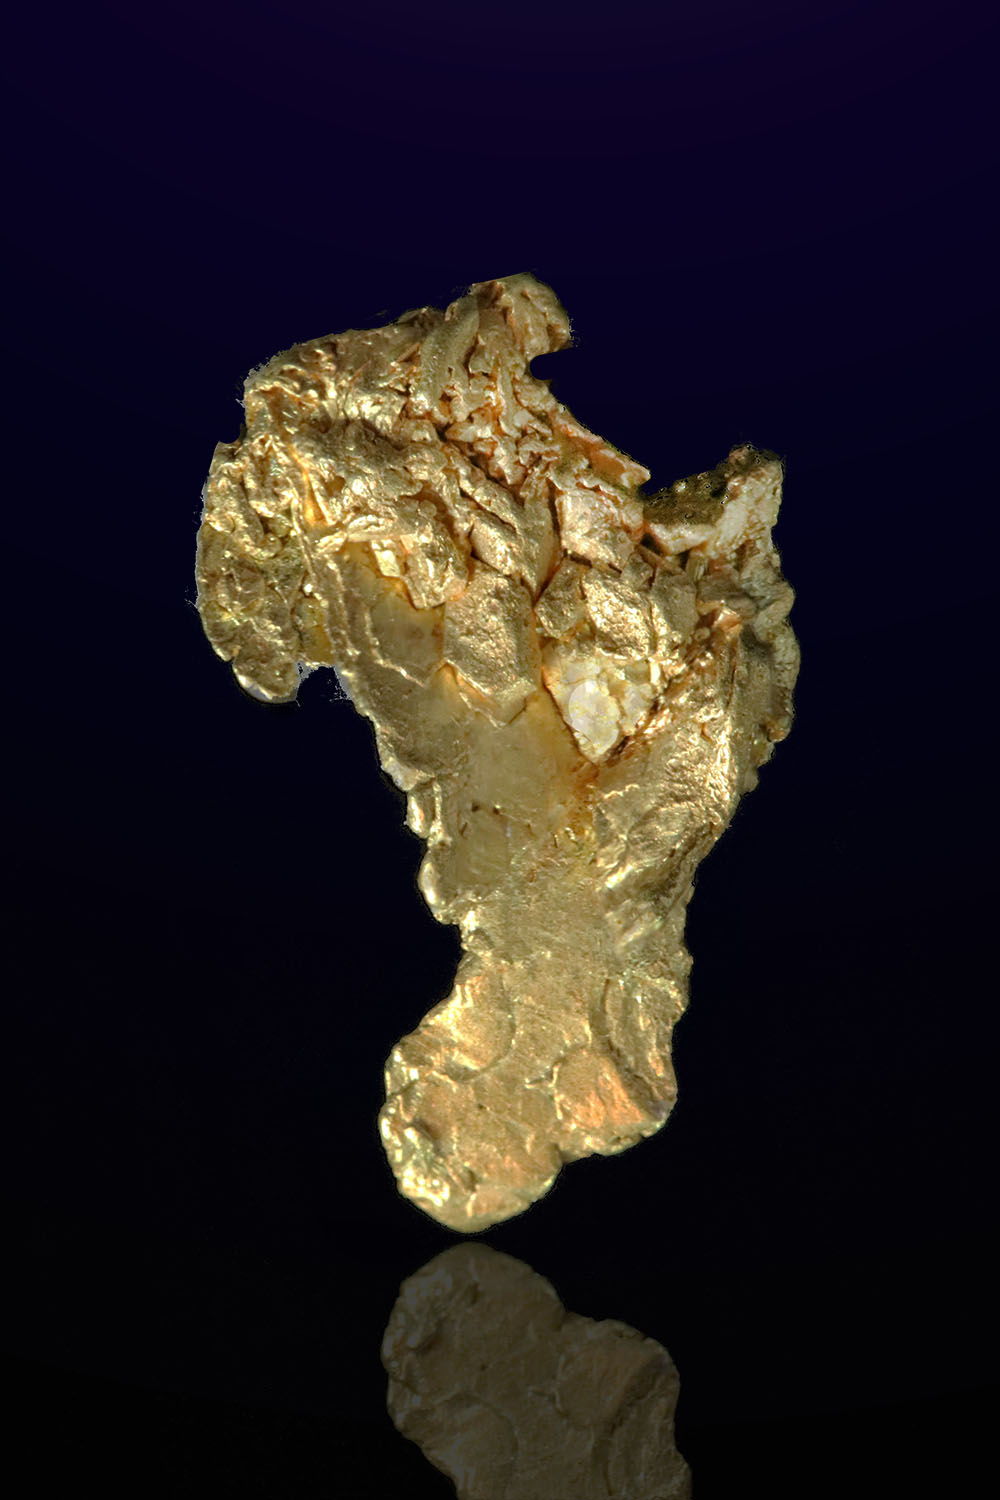 Mt. Kare - Papua New Guinea - Tapered Gold Specimen